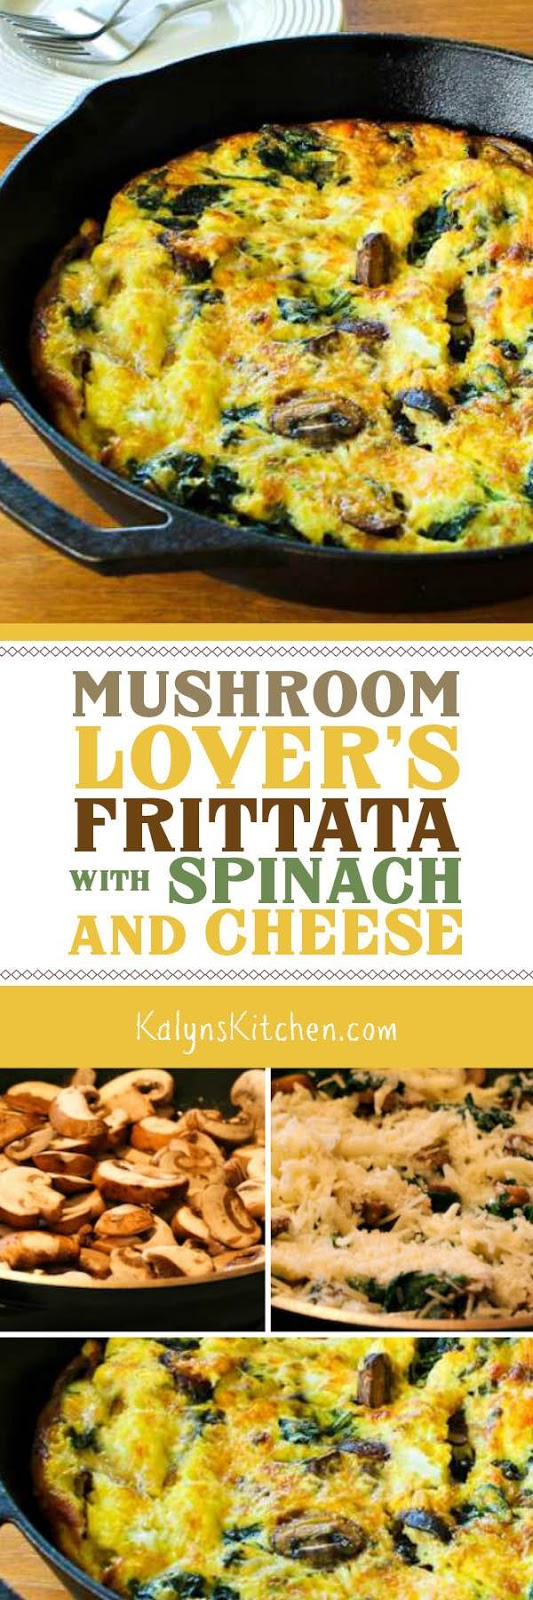 Kalyn's Kitchen®: Mushroom Lover's Frittata with Spinach and Cheese